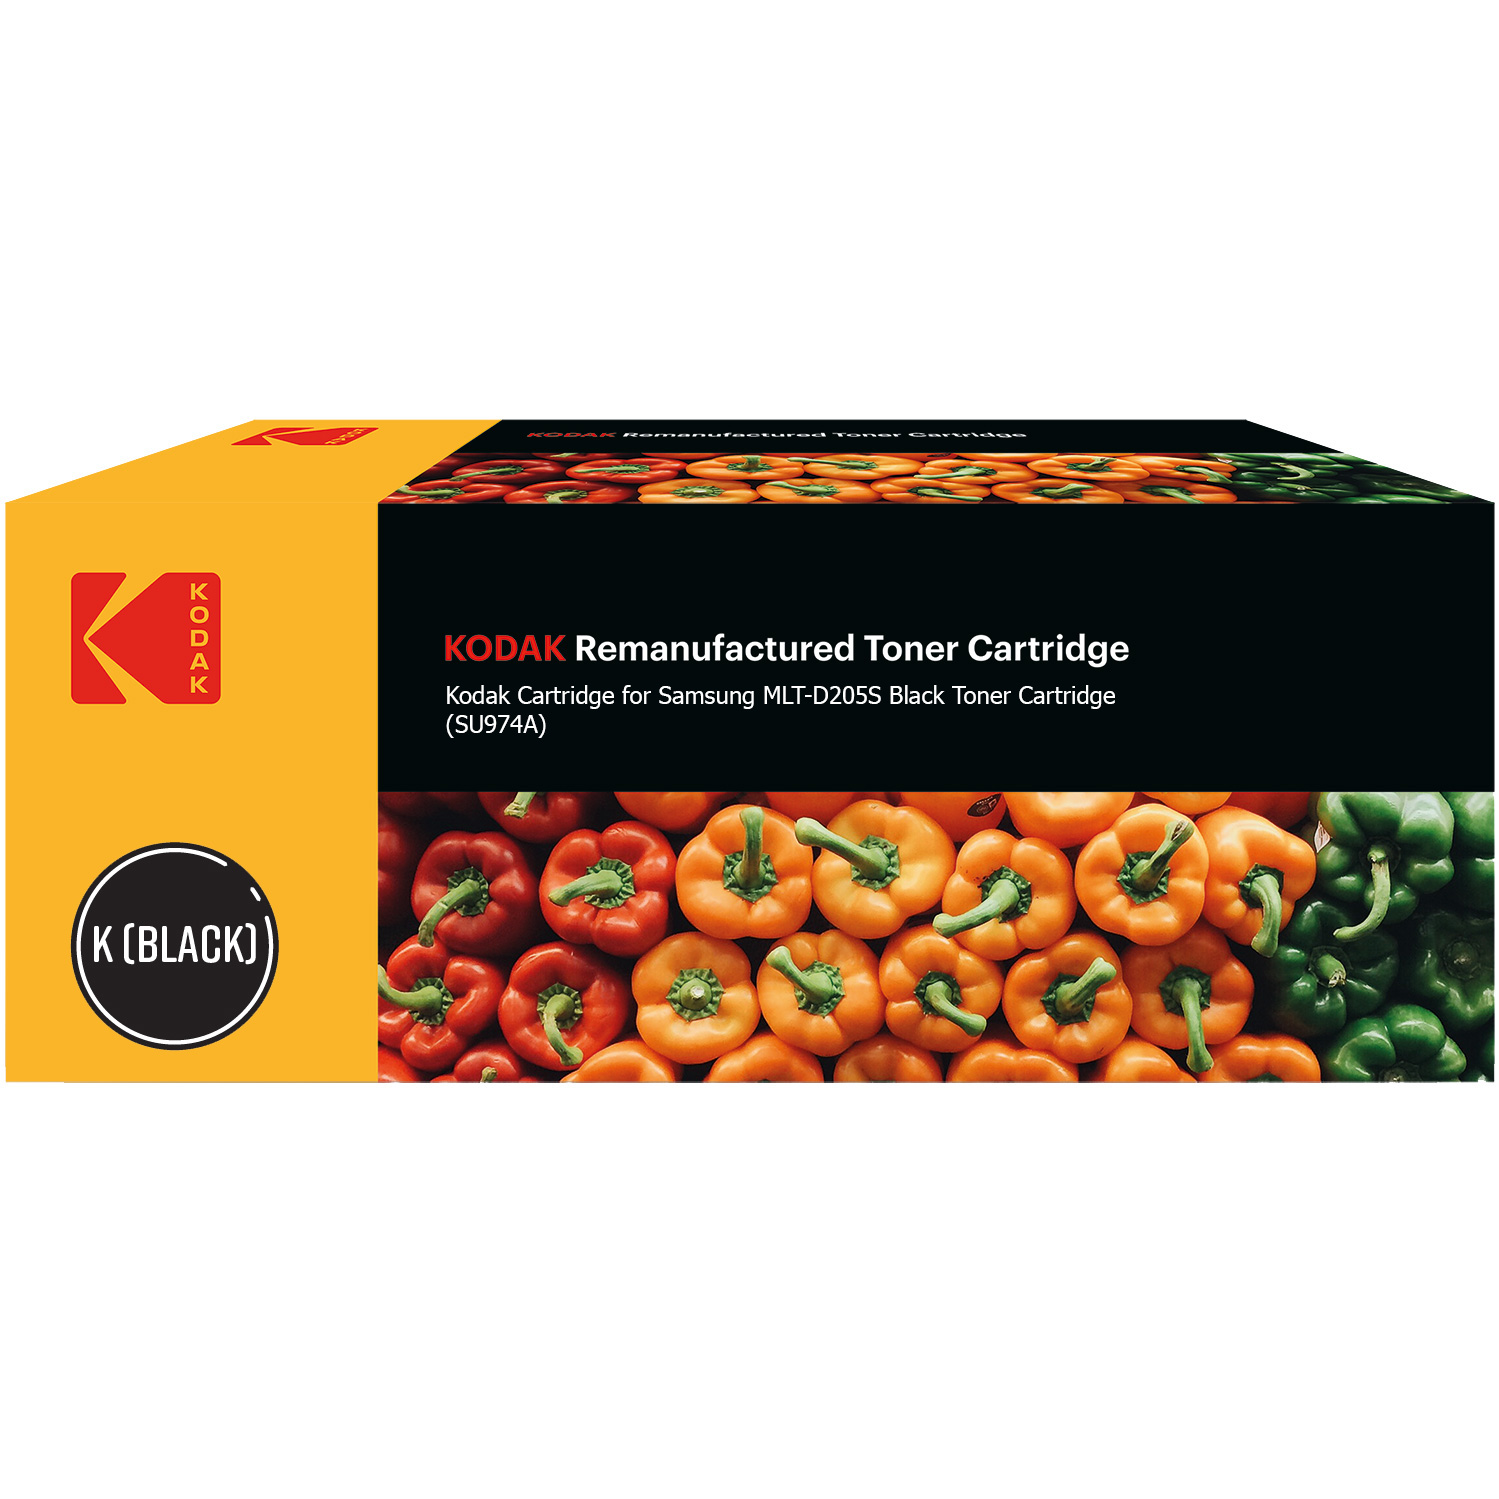 Ultimate Samsung MLT-D205S Black Toner Cartridge (SU974A) (Kodak KODMLTD205S)